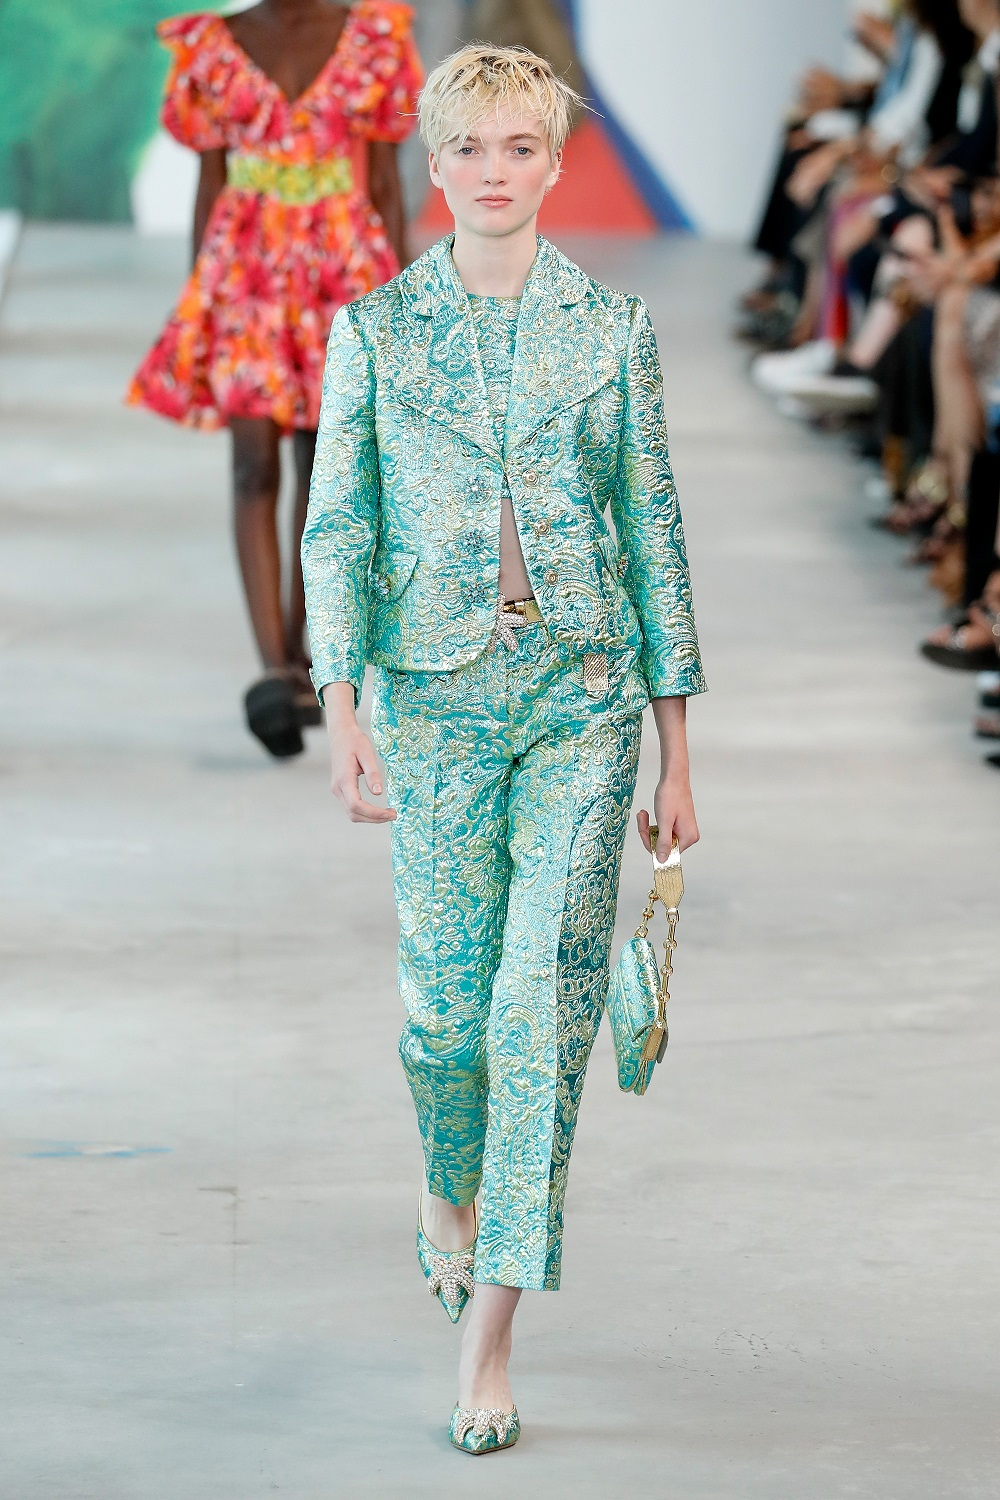 The SS19 Michael Kors Collection Runway Show